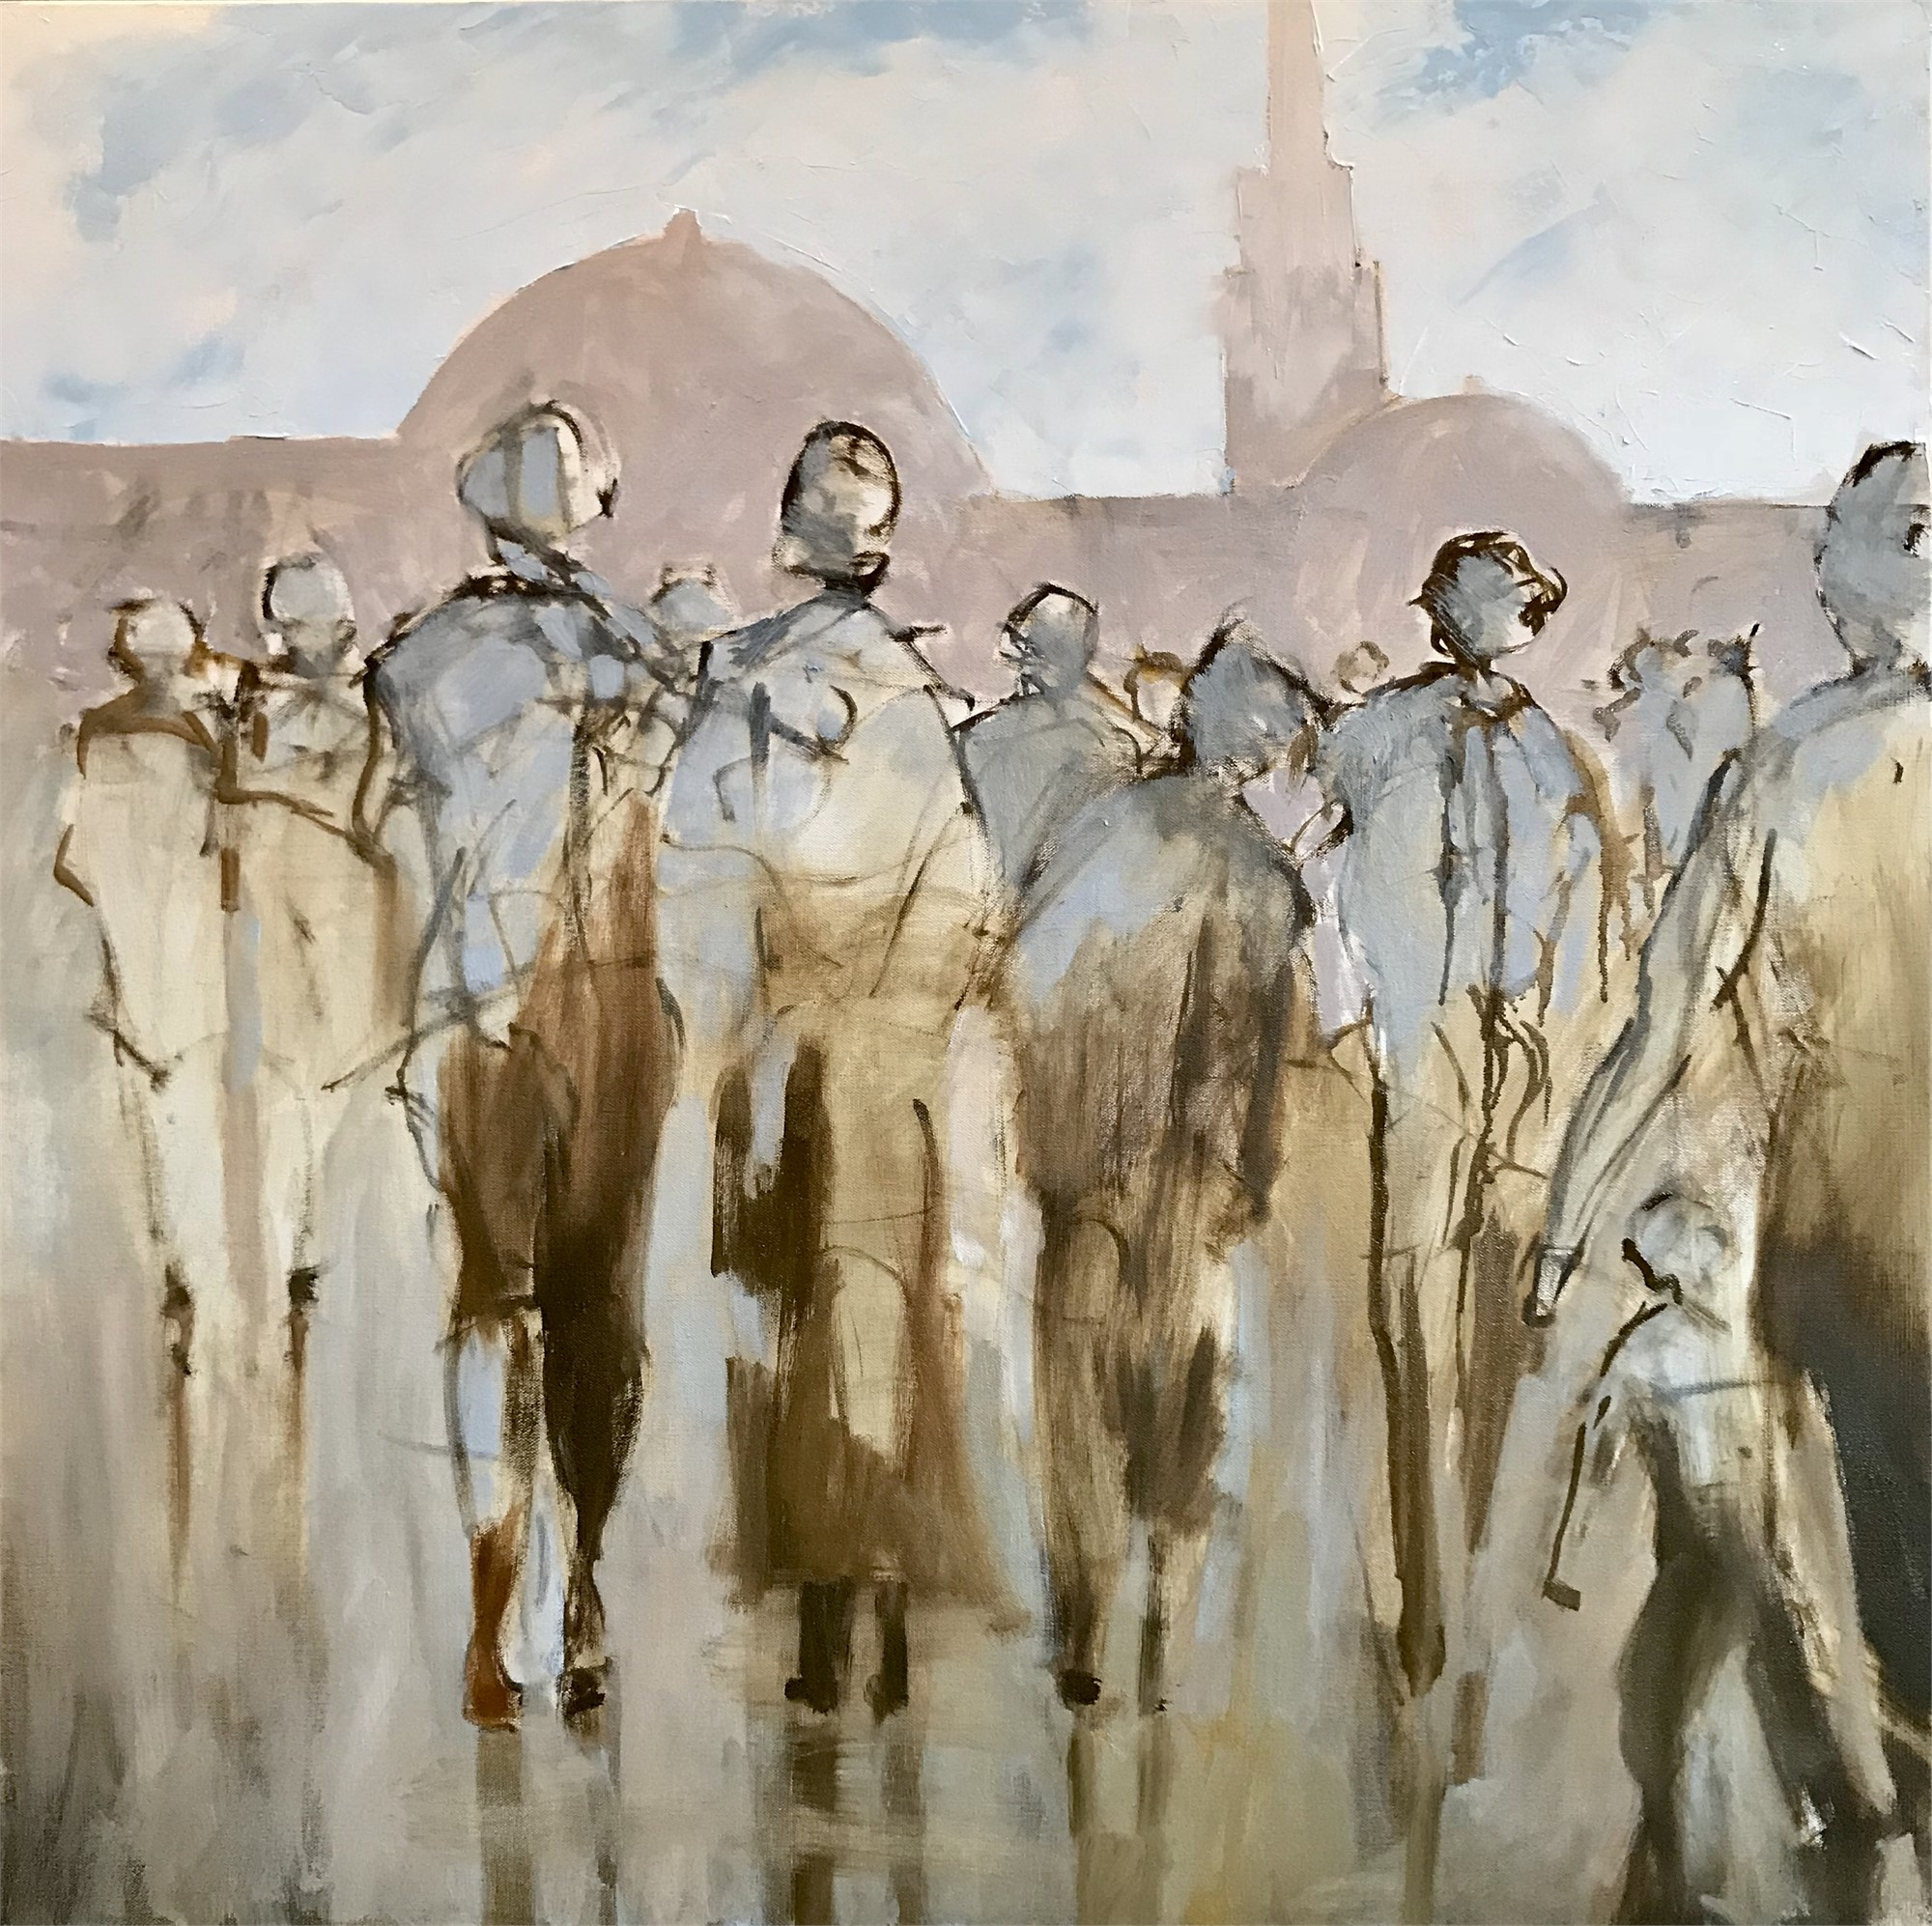 Roman Festival by Betsy Havens